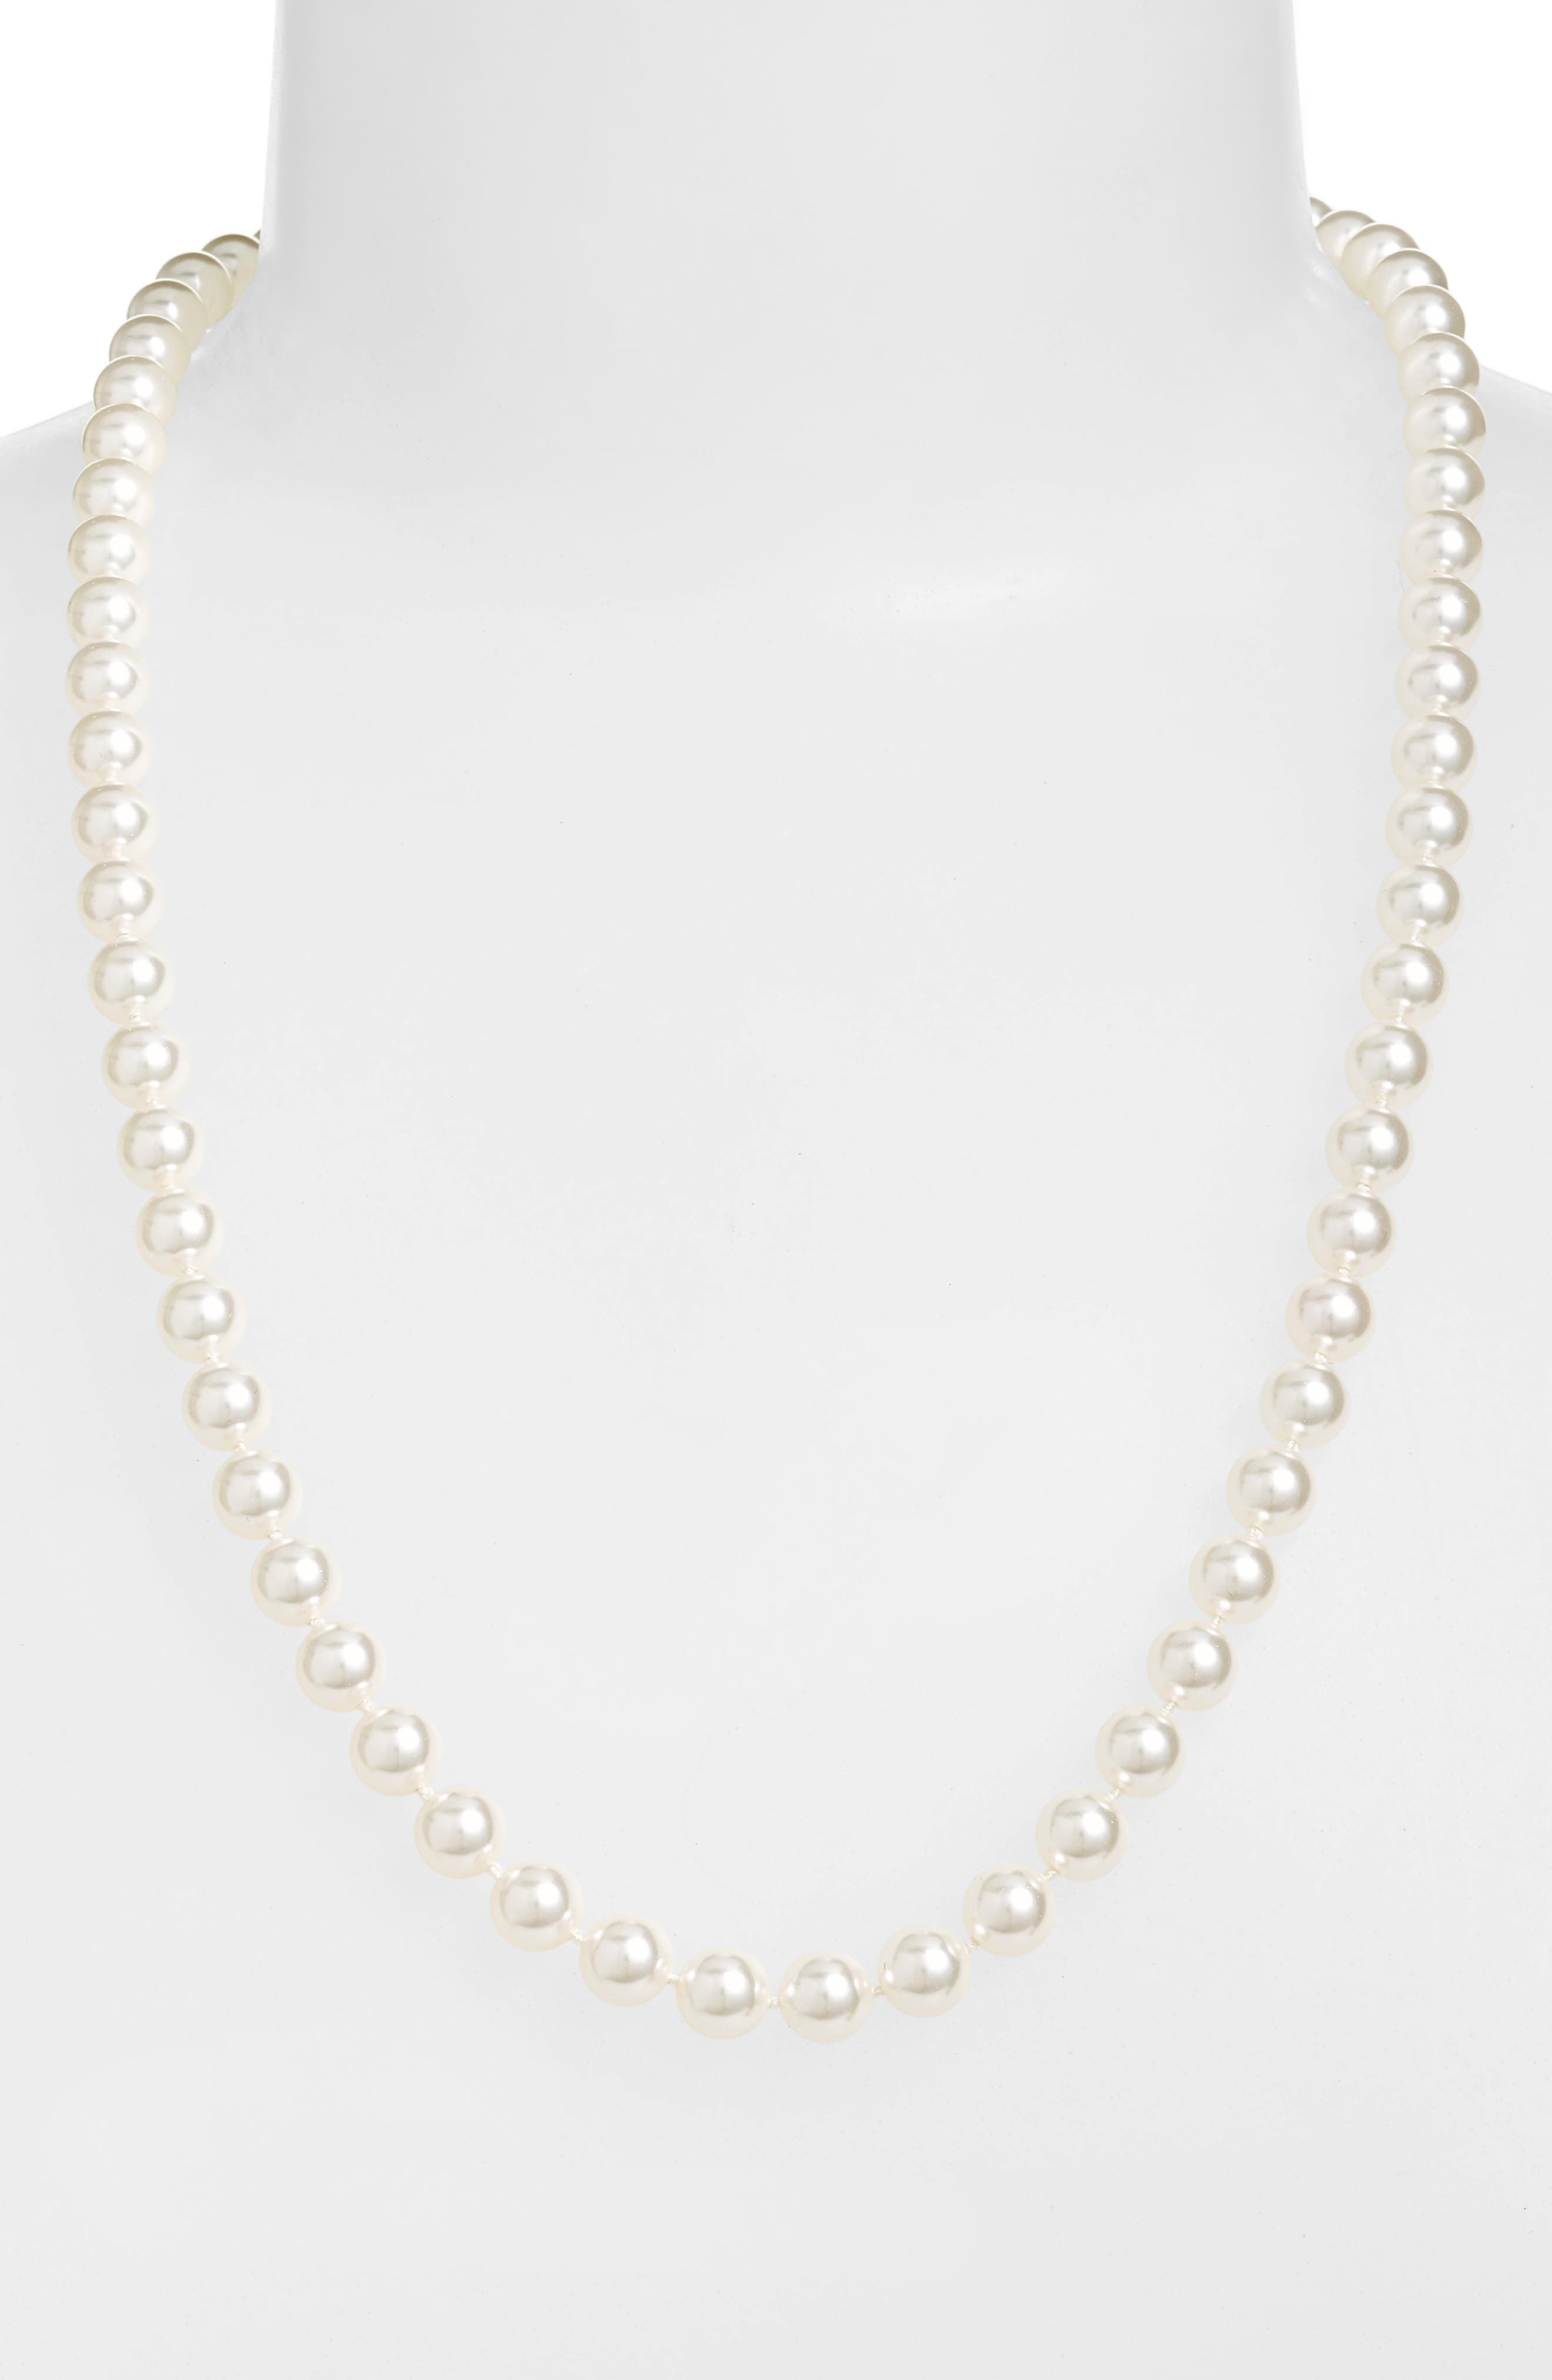 24-Inch Glass Pearl Strand Necklace,                         Main,                         color, White Pearl